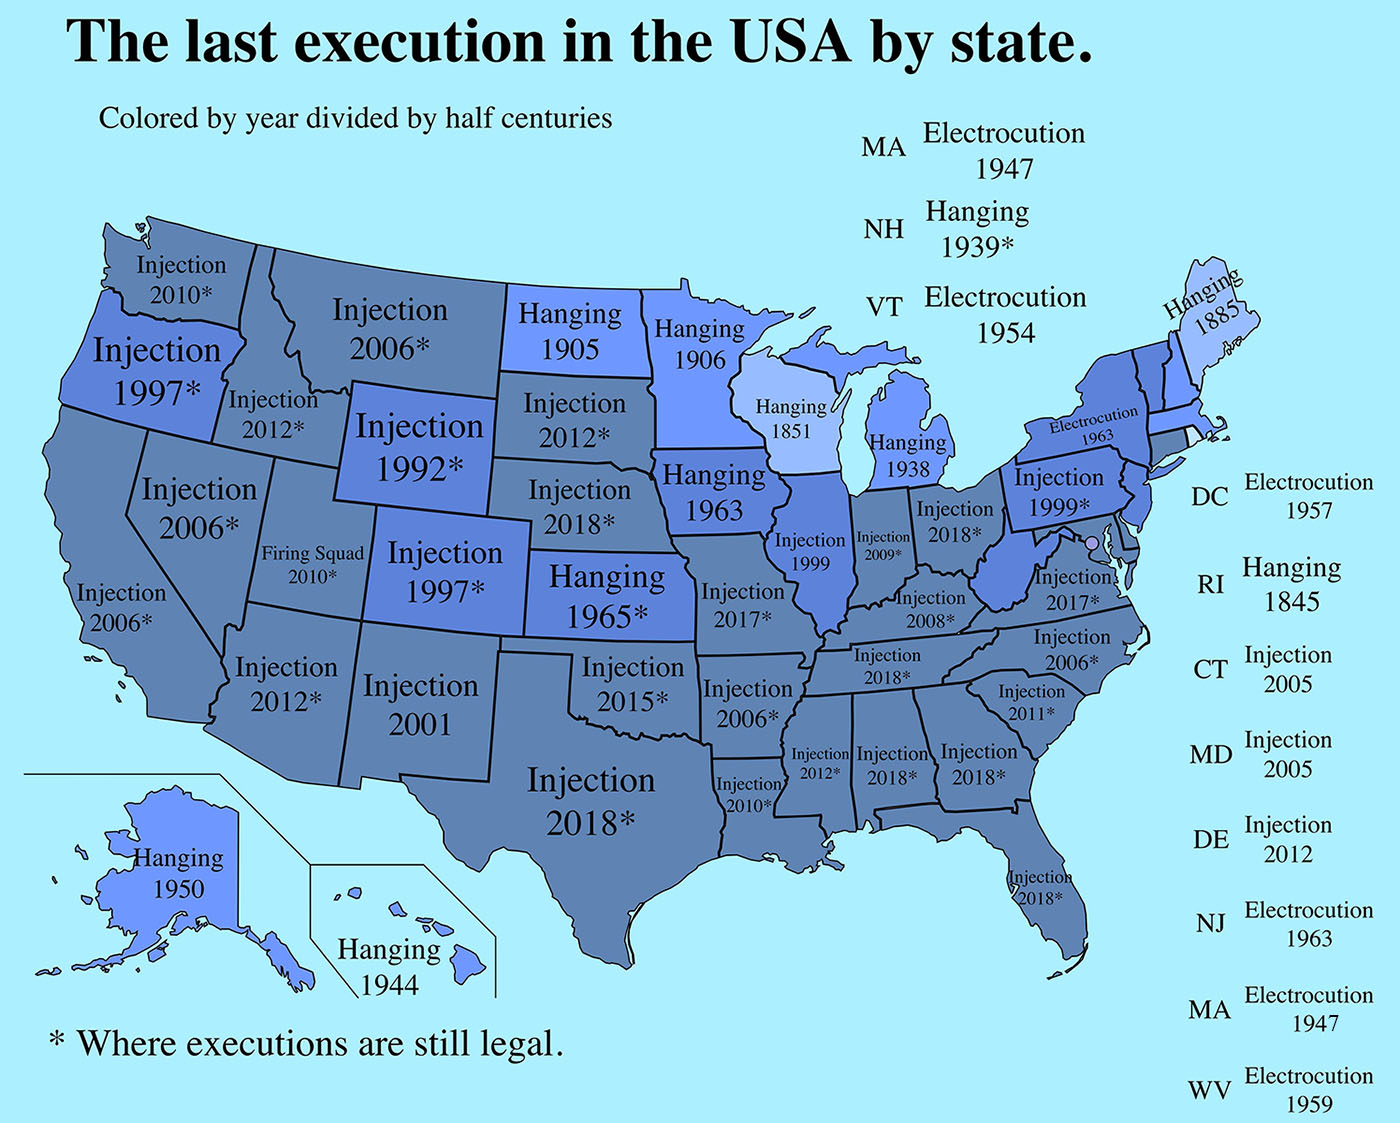 The last execution in the United States